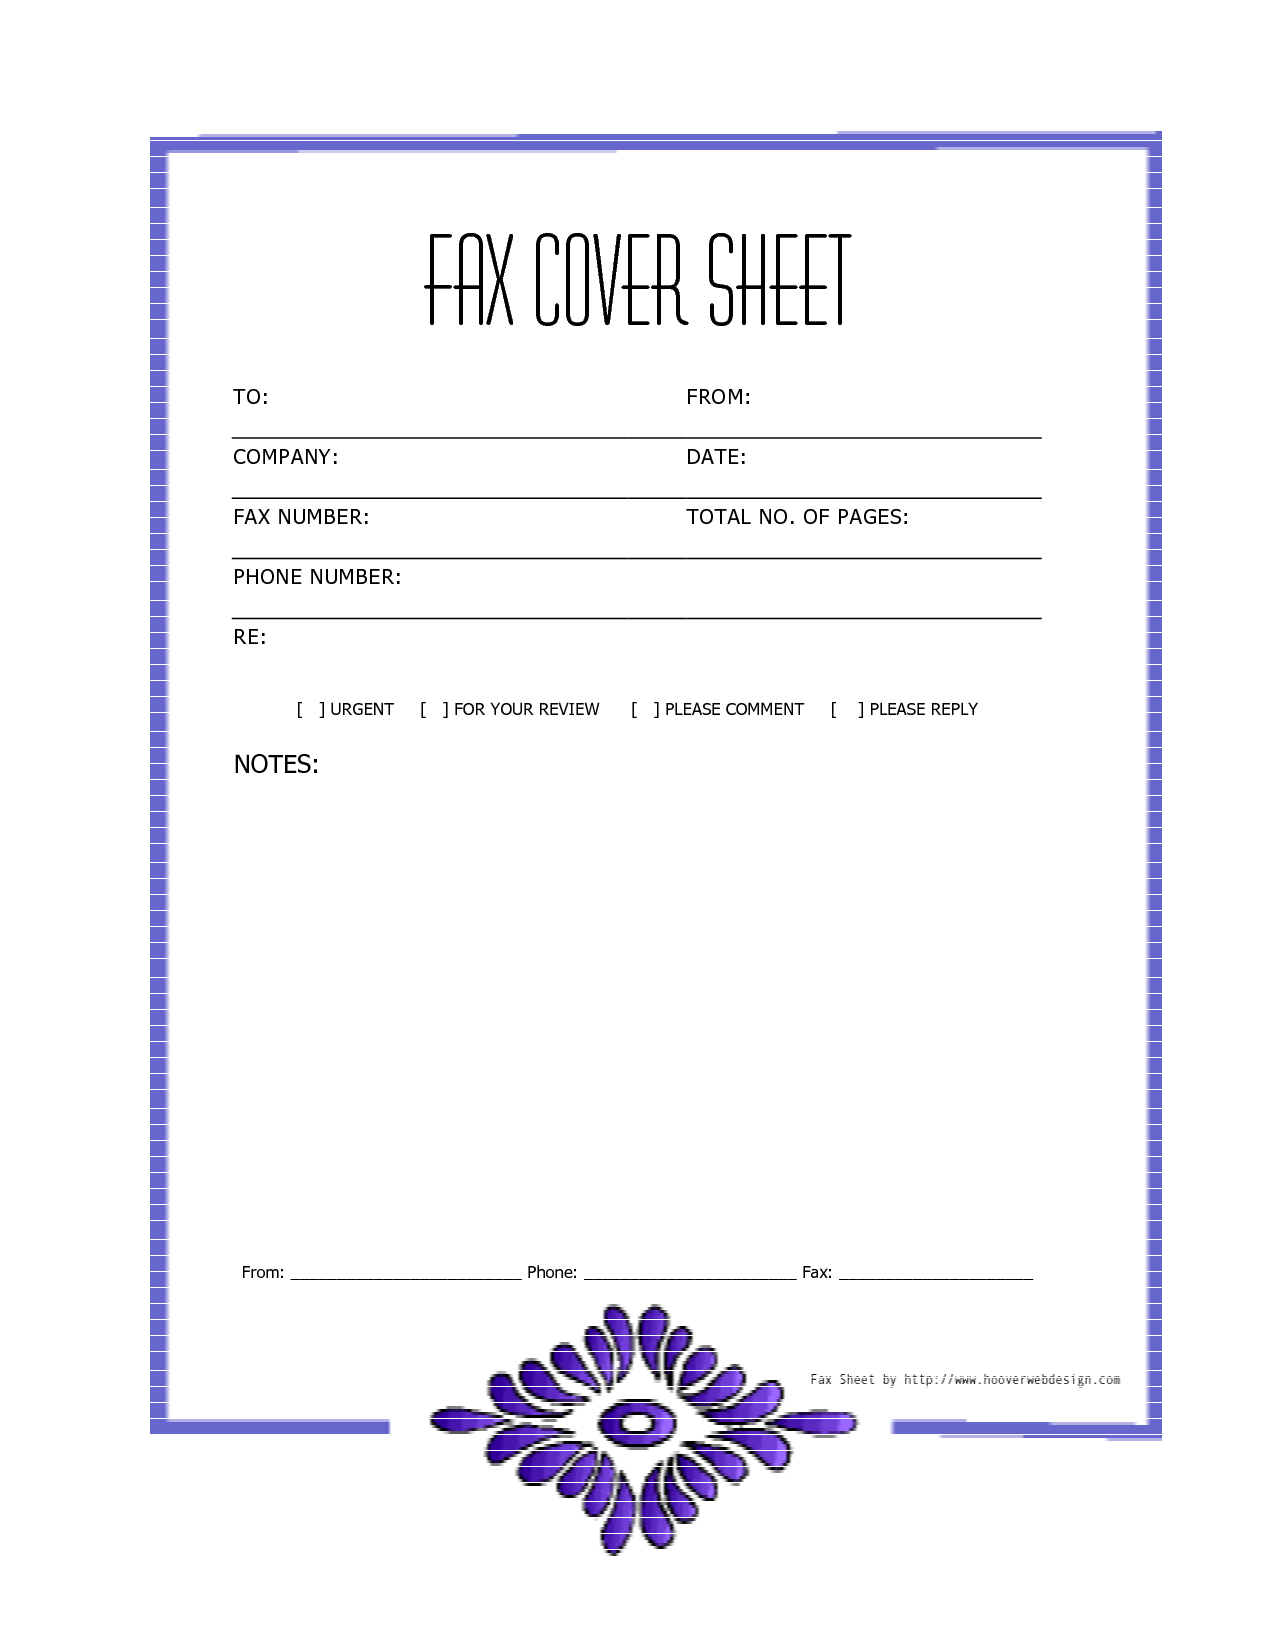 Clipart fax cover sheet image transparent 17 Best images about Printable Fax | The o'jays, Couple and Funny image transparent